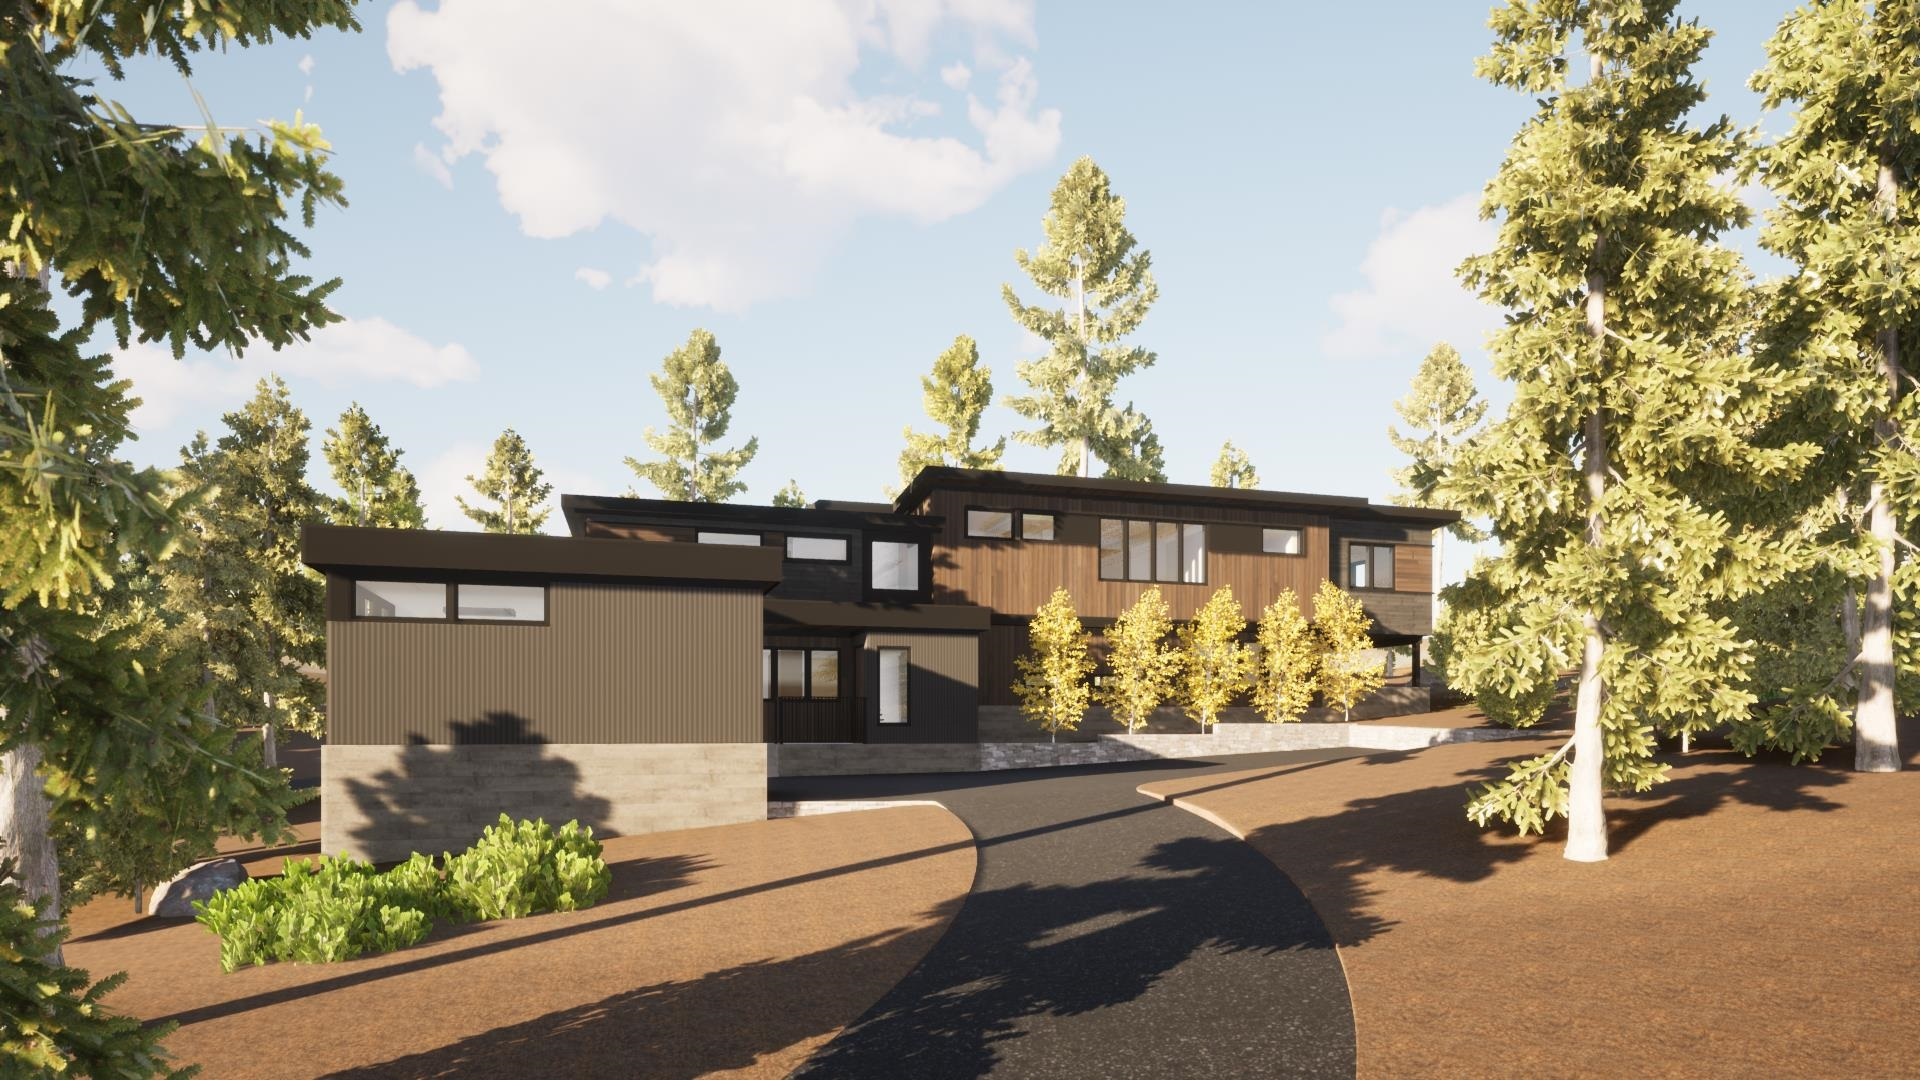 Image for 9262 Brae Court, Truckee, CA 96161